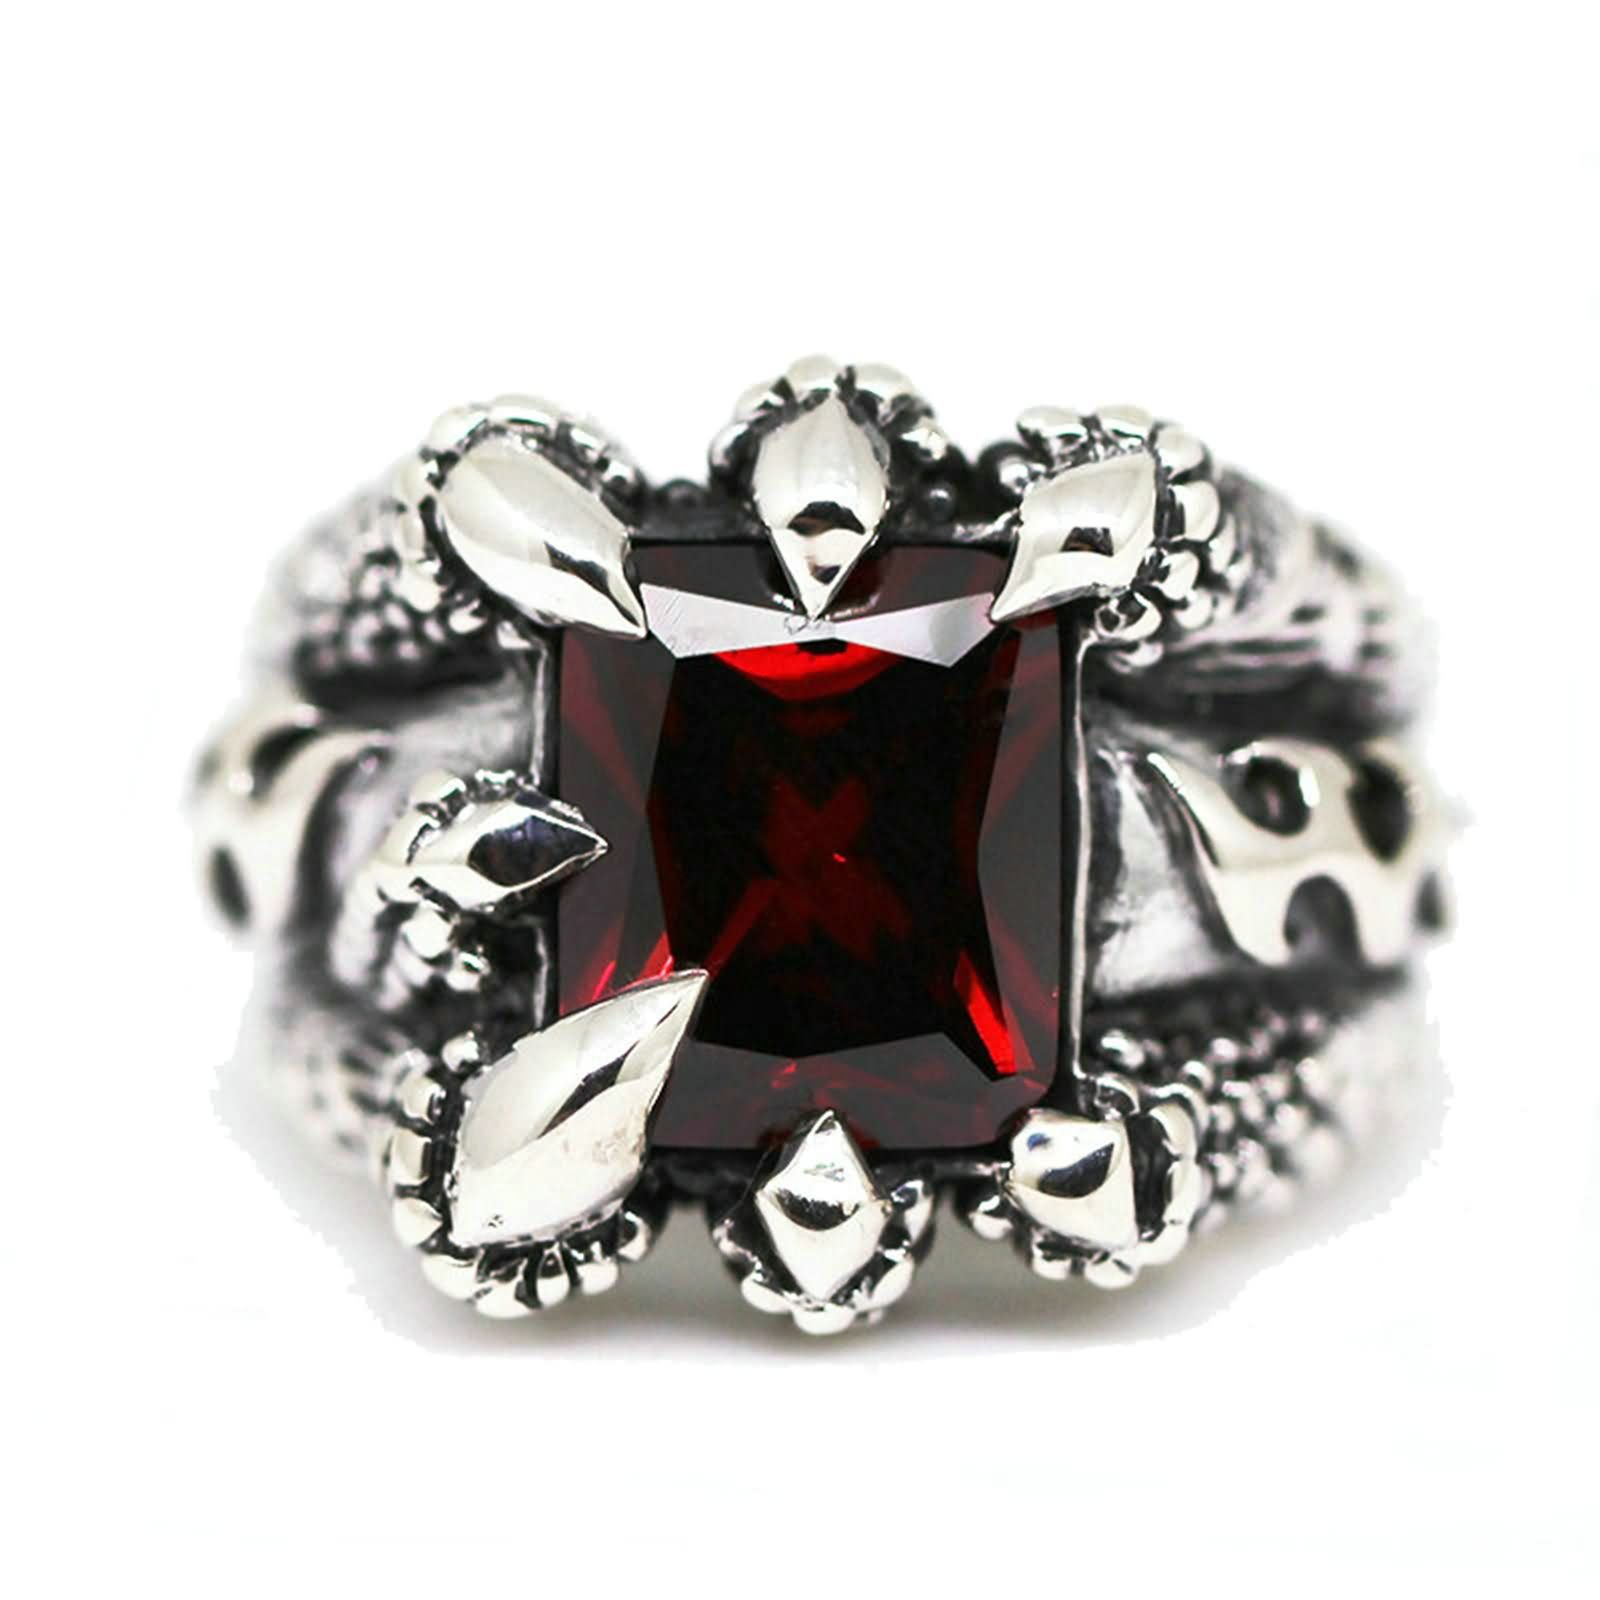 Bishilin Rings for Men Silver Plated Paw with Rectangle Red Gem Partner Rings Silver Size 10 by Bishilin (Image #6)